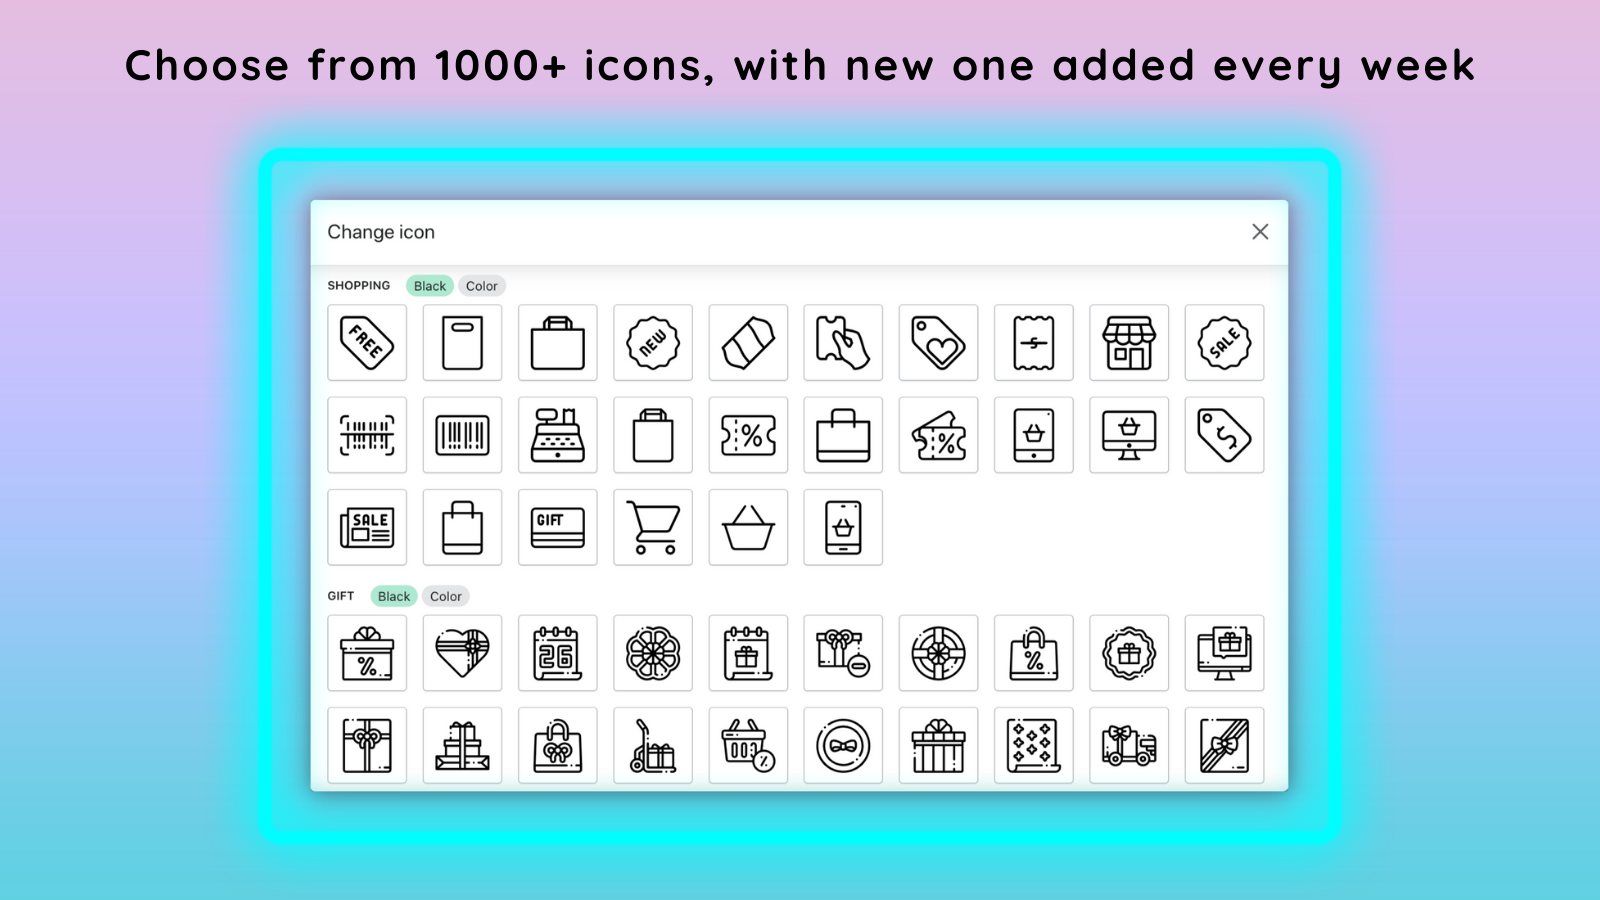 1000+ icons library